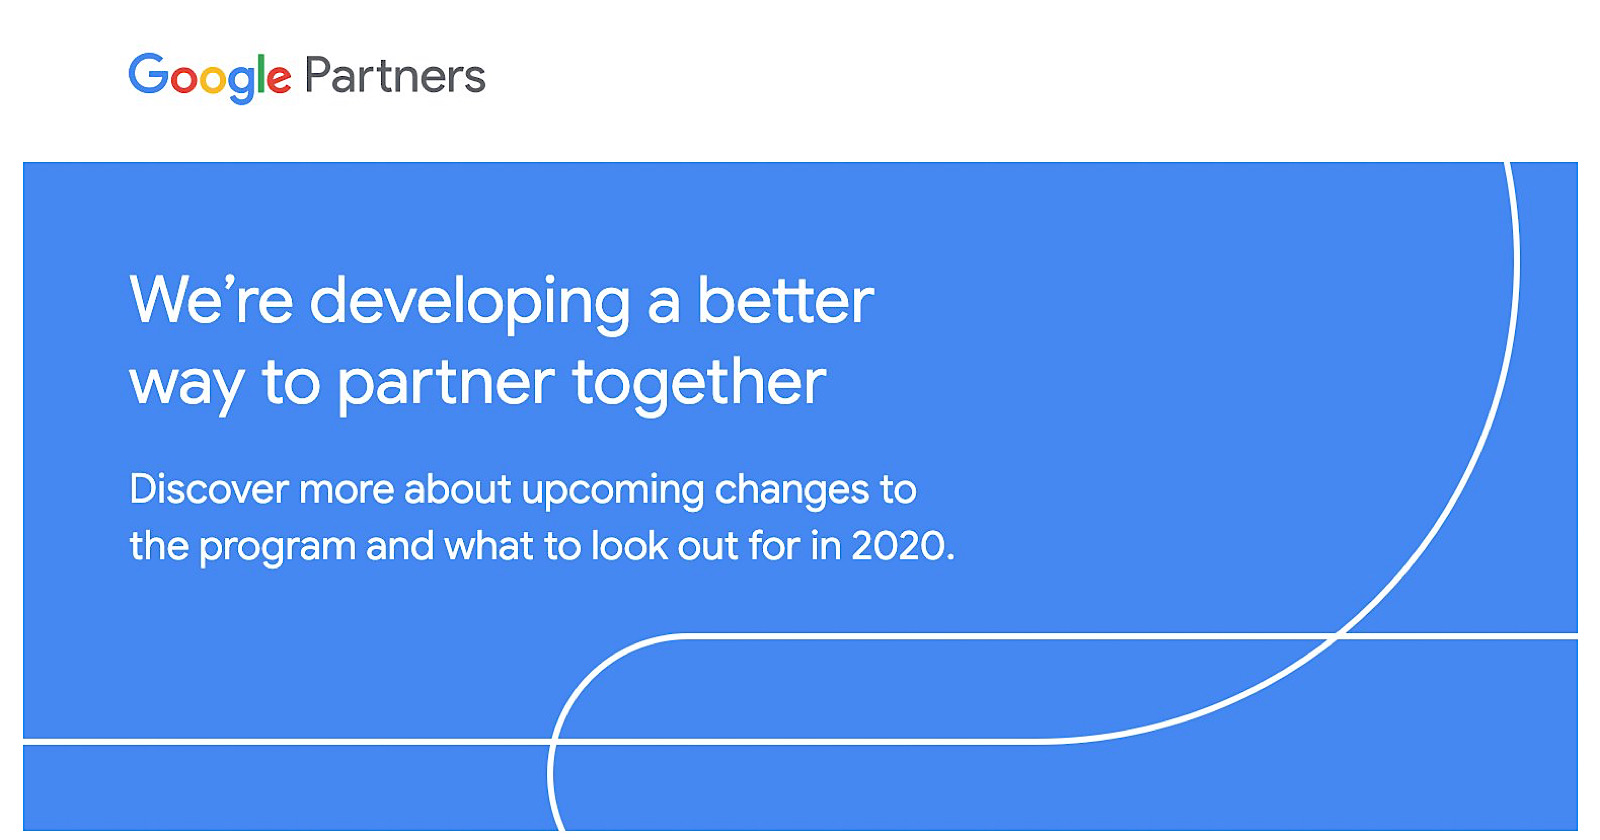 Google Partners changes